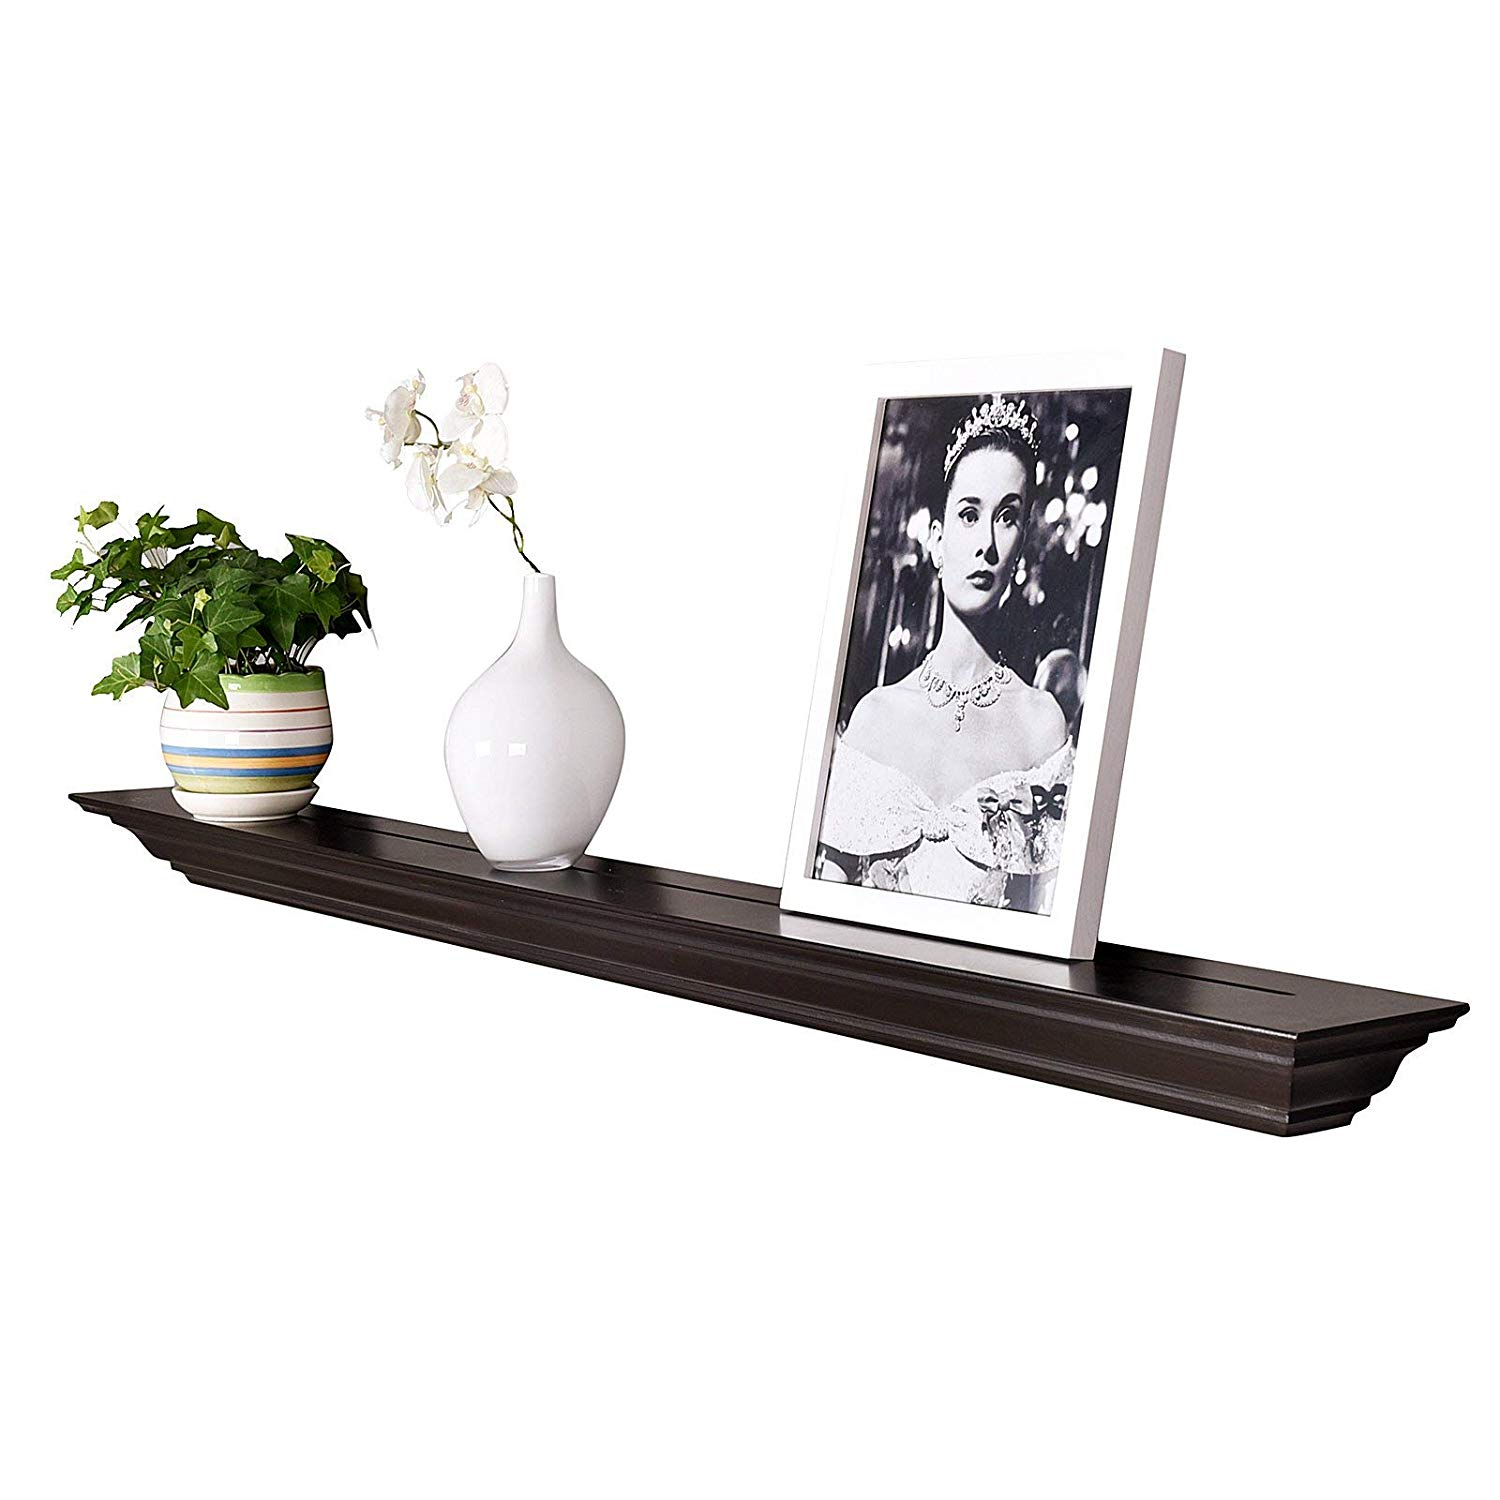 welland corona crown molding floating wall ledge shelf espresso shelves fireplace mantel inch home kitchen long rustic shower booth metal coat stand unit wrought iron and wood